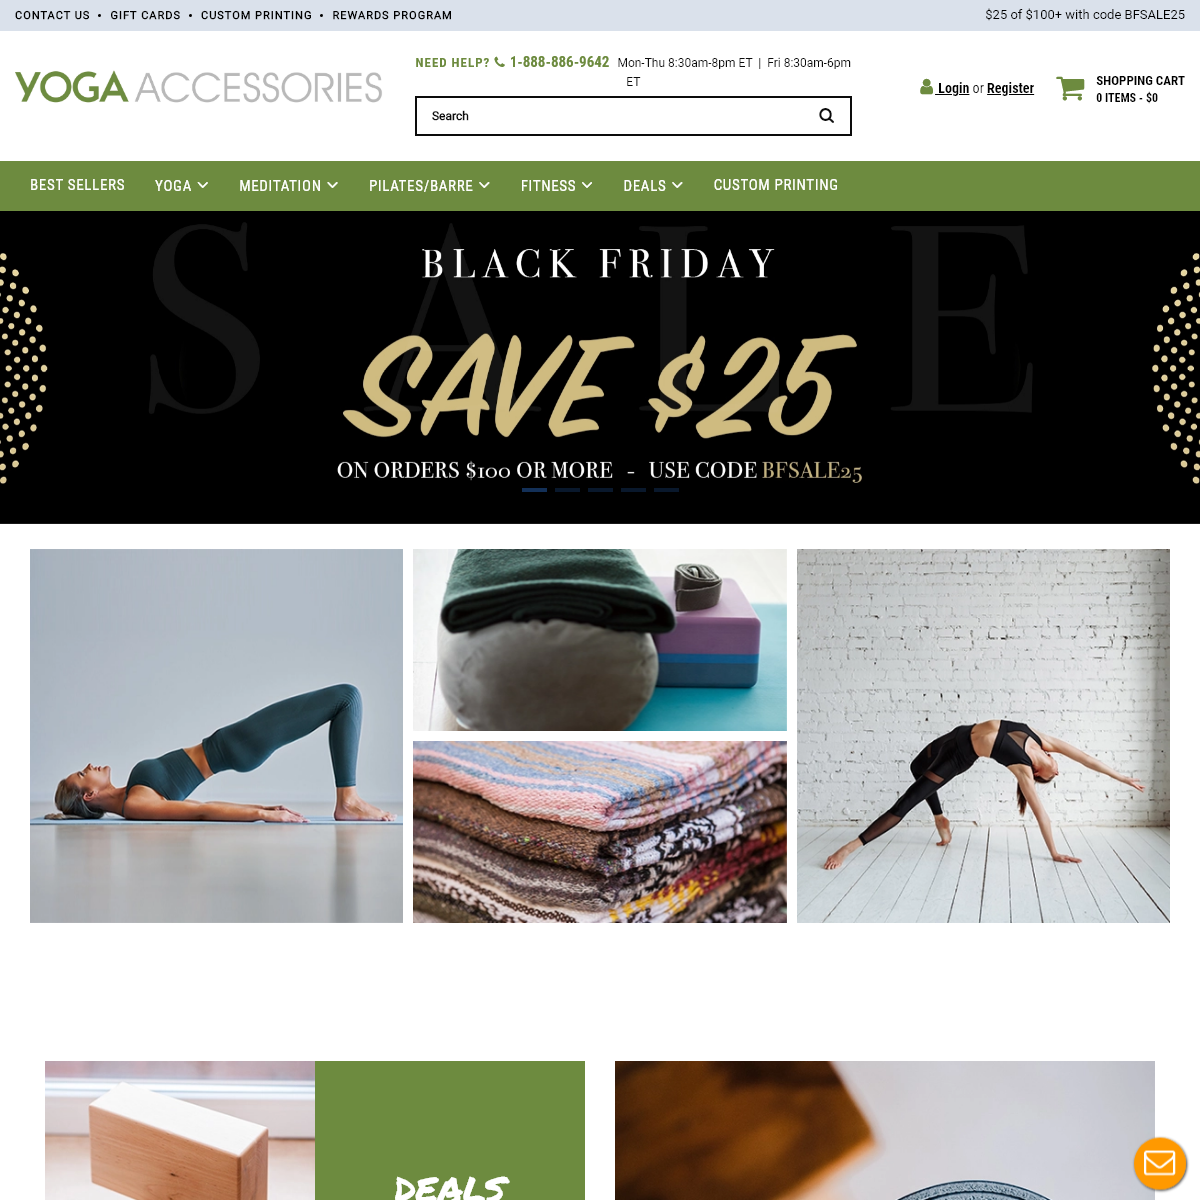 Yoga Accessories- Shop for the Best Yoga Mats, Yoga Props & Yoga Gear - Yoga Accessories